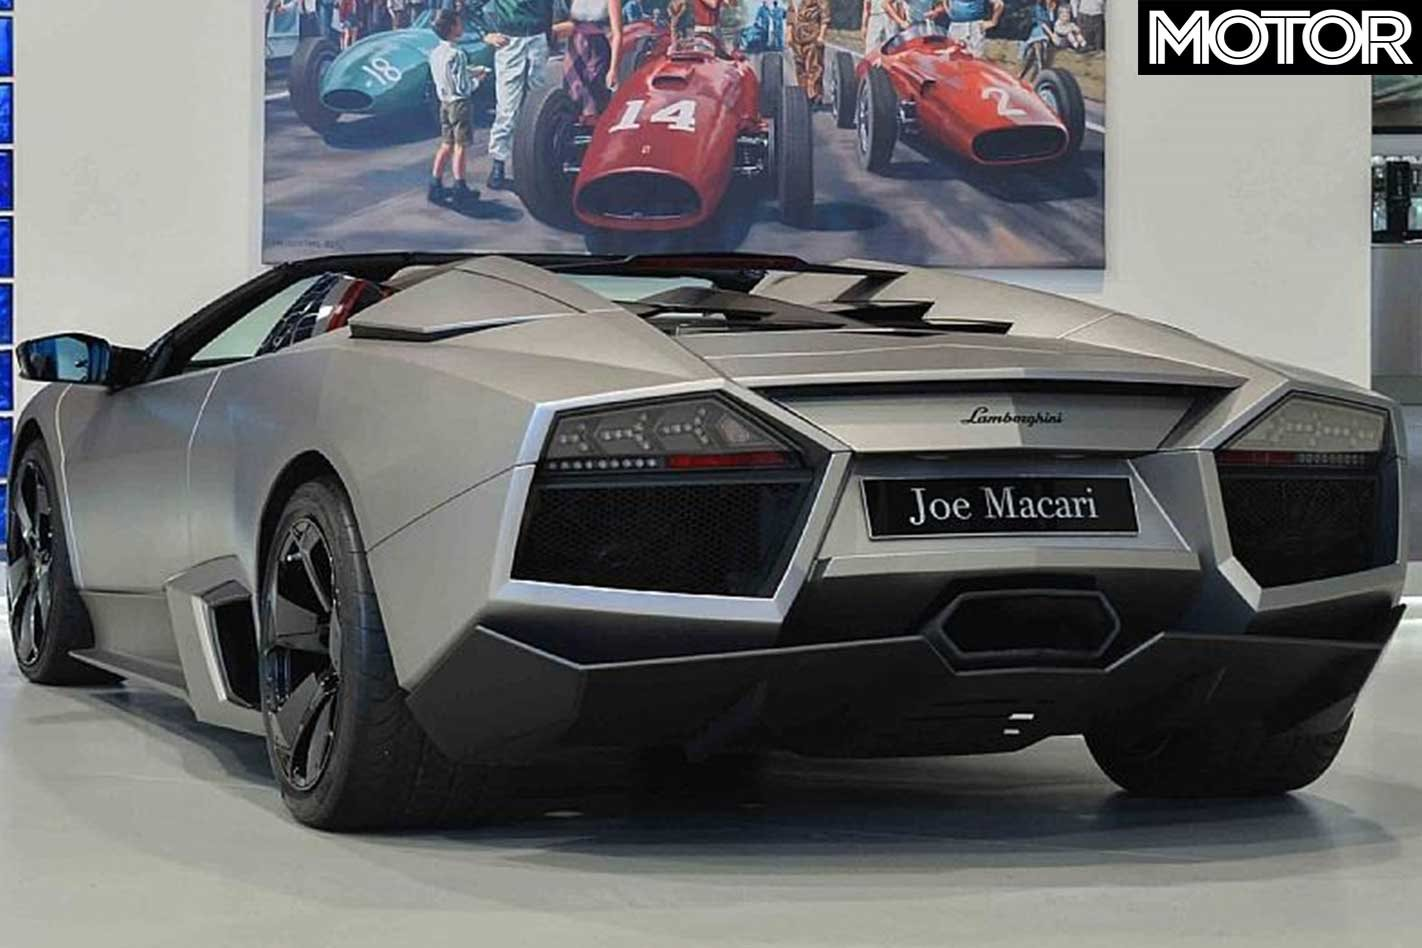 Ultra Rare Rhd Lamborghini Reventon For Sale